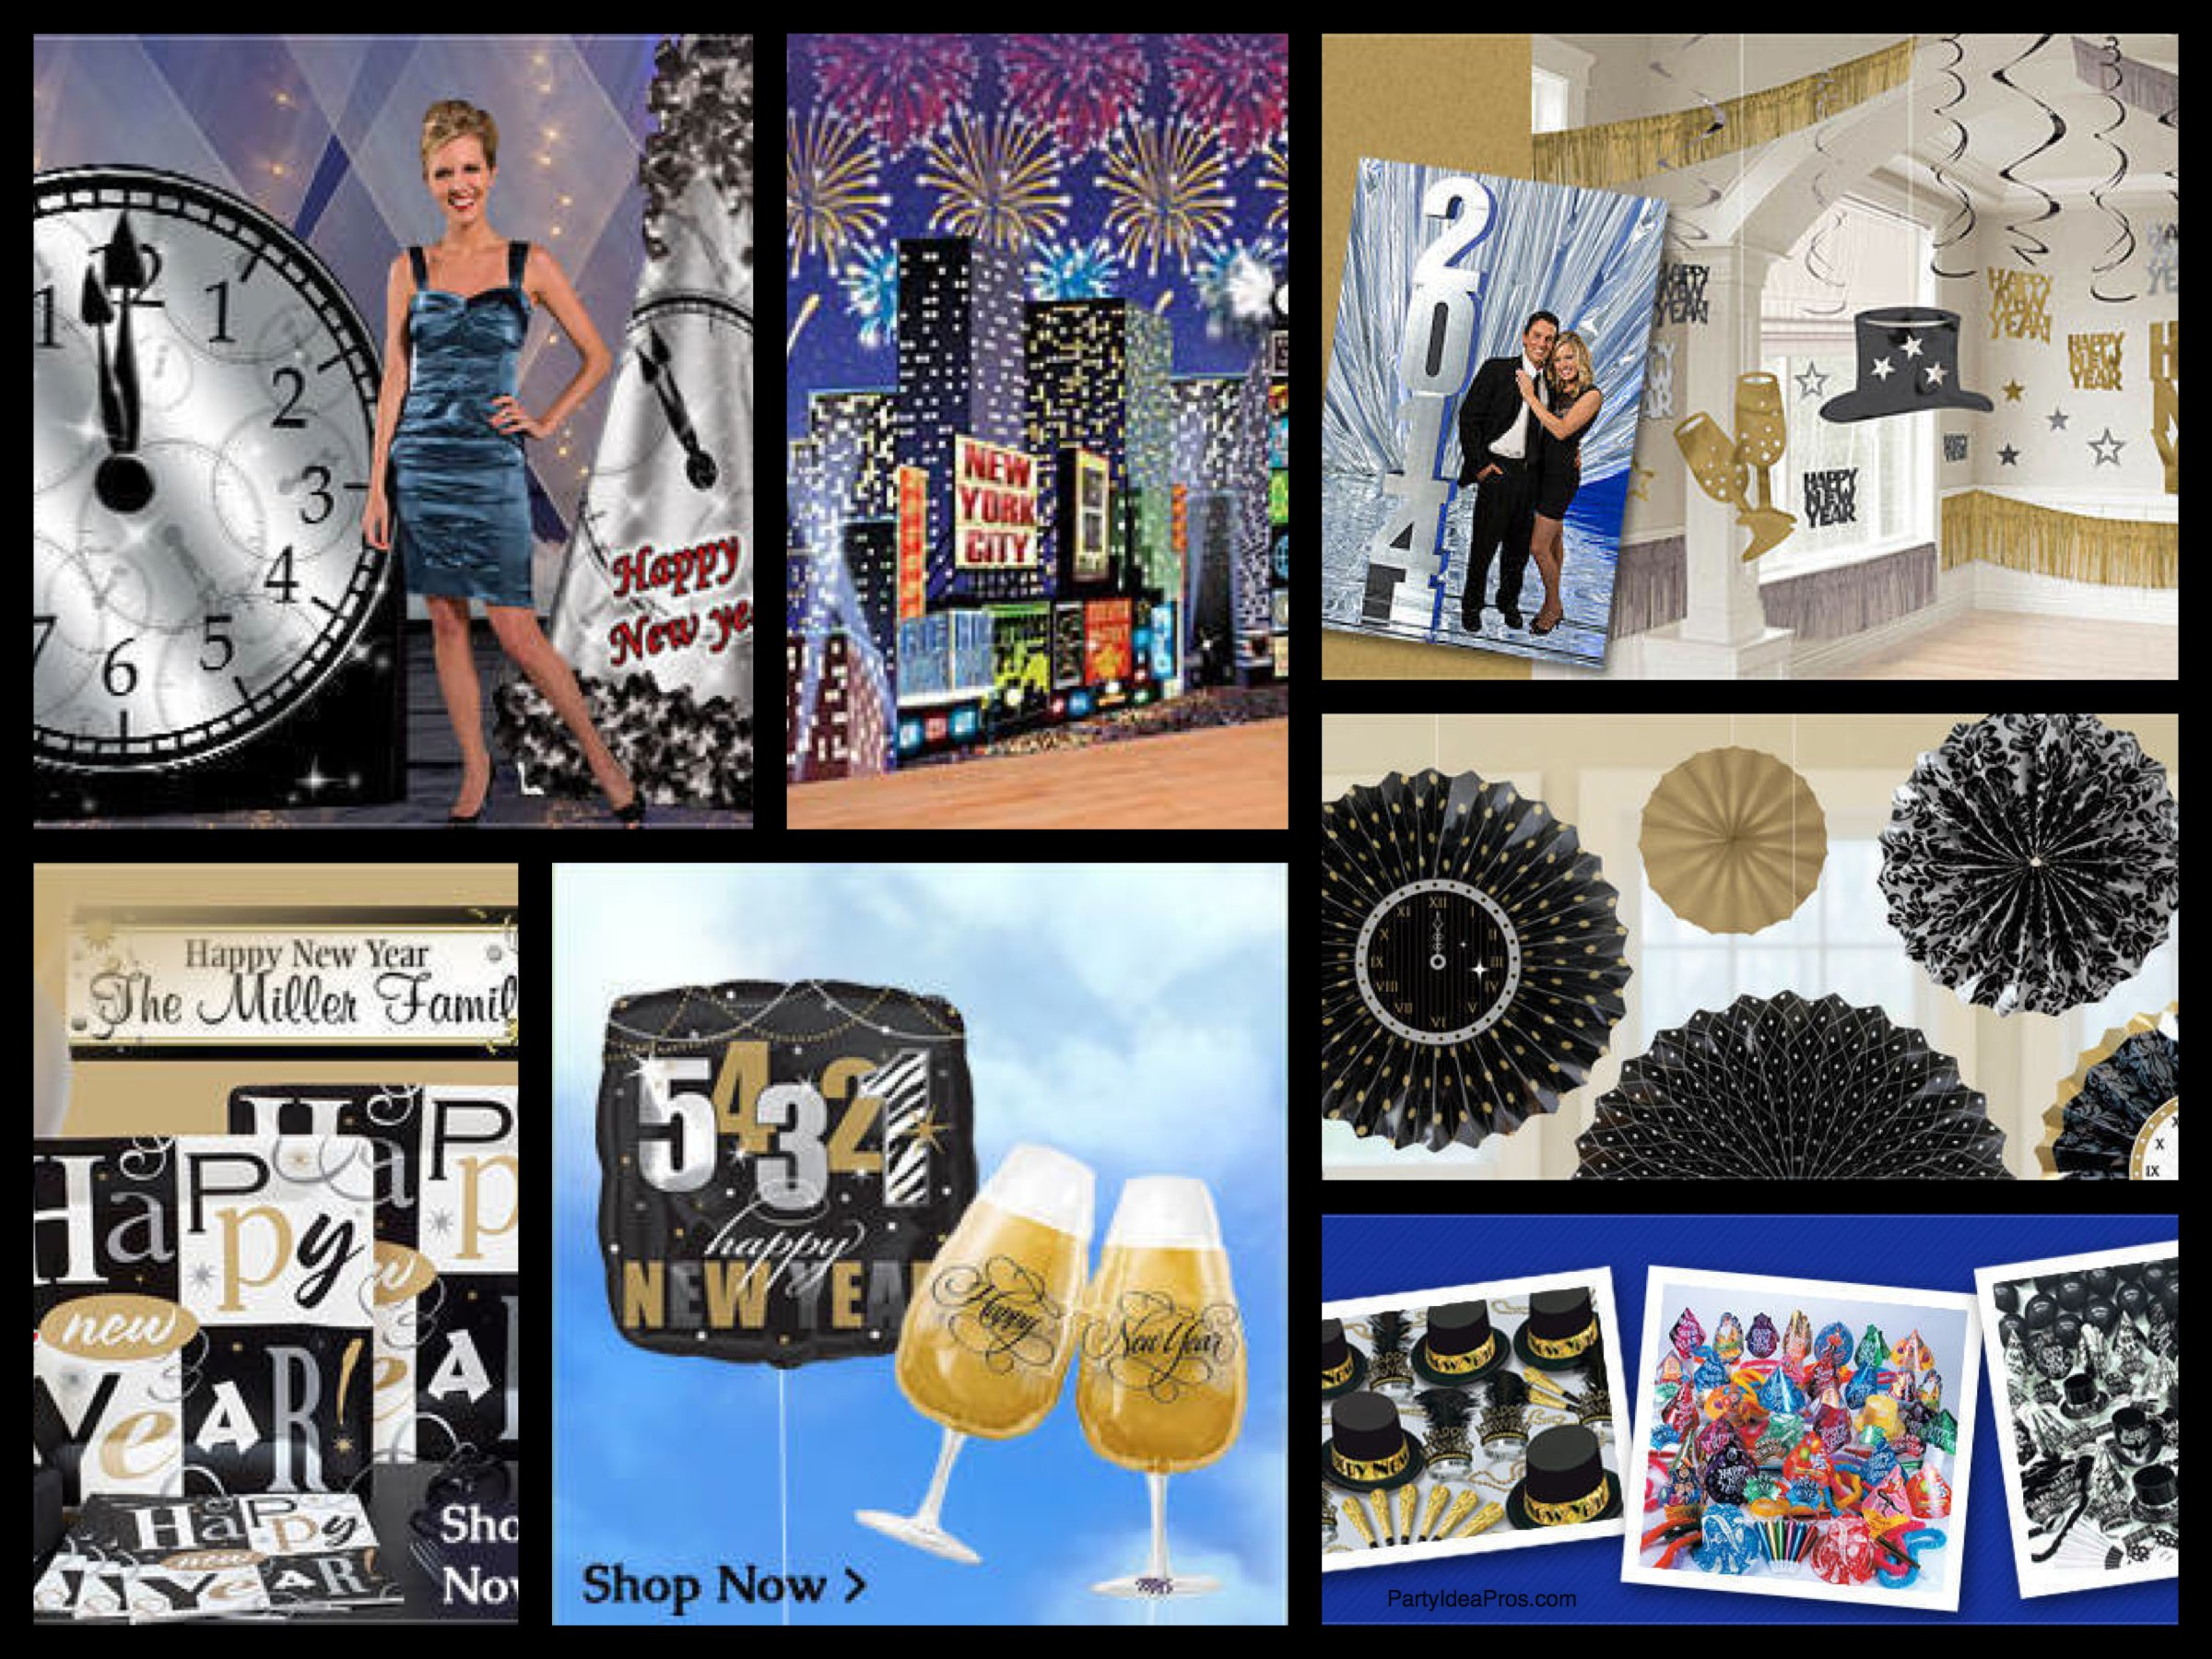 New Years Eve Decorations Party Supplies Partyideapros Com